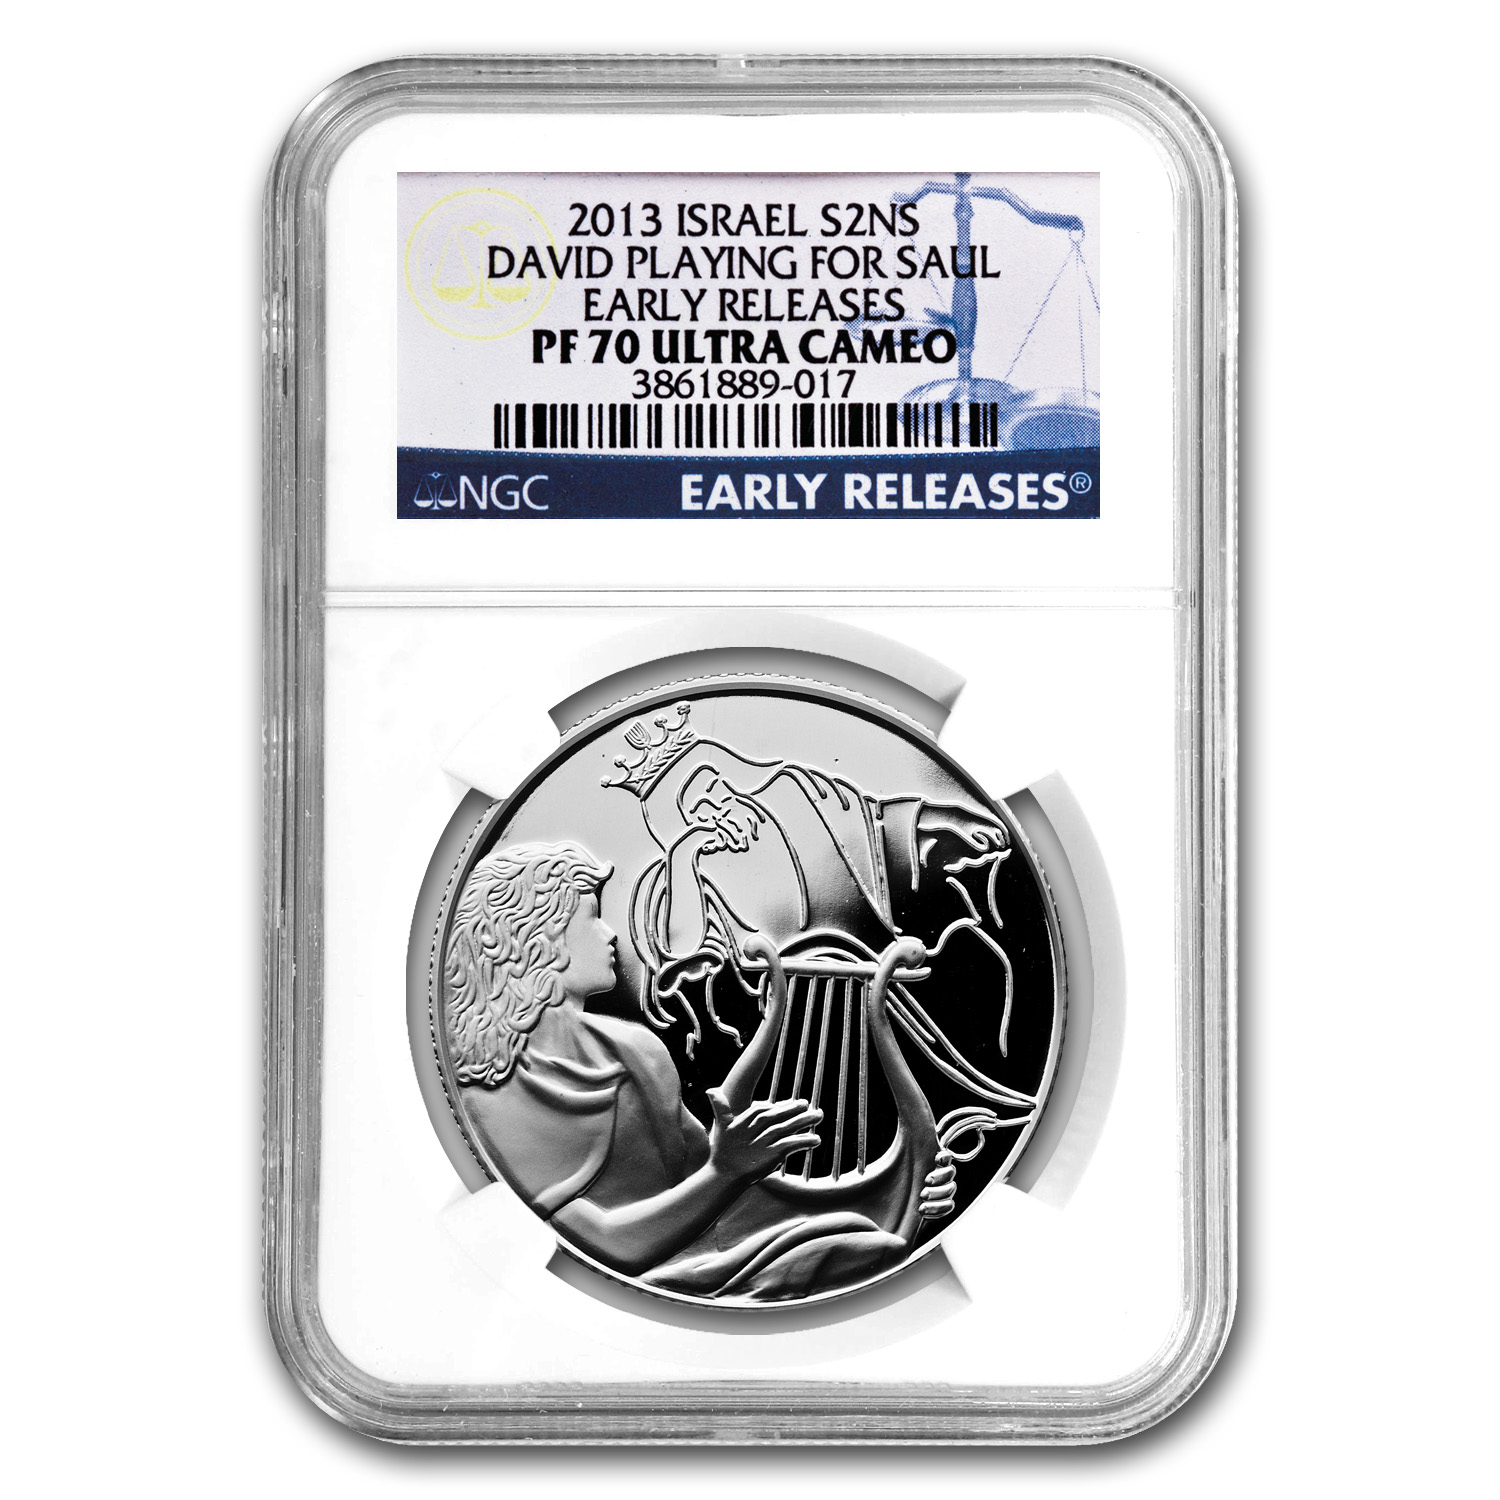 2013 Israel Silver 2 NIS David Playing for Saul PF-70 NGC (ER)